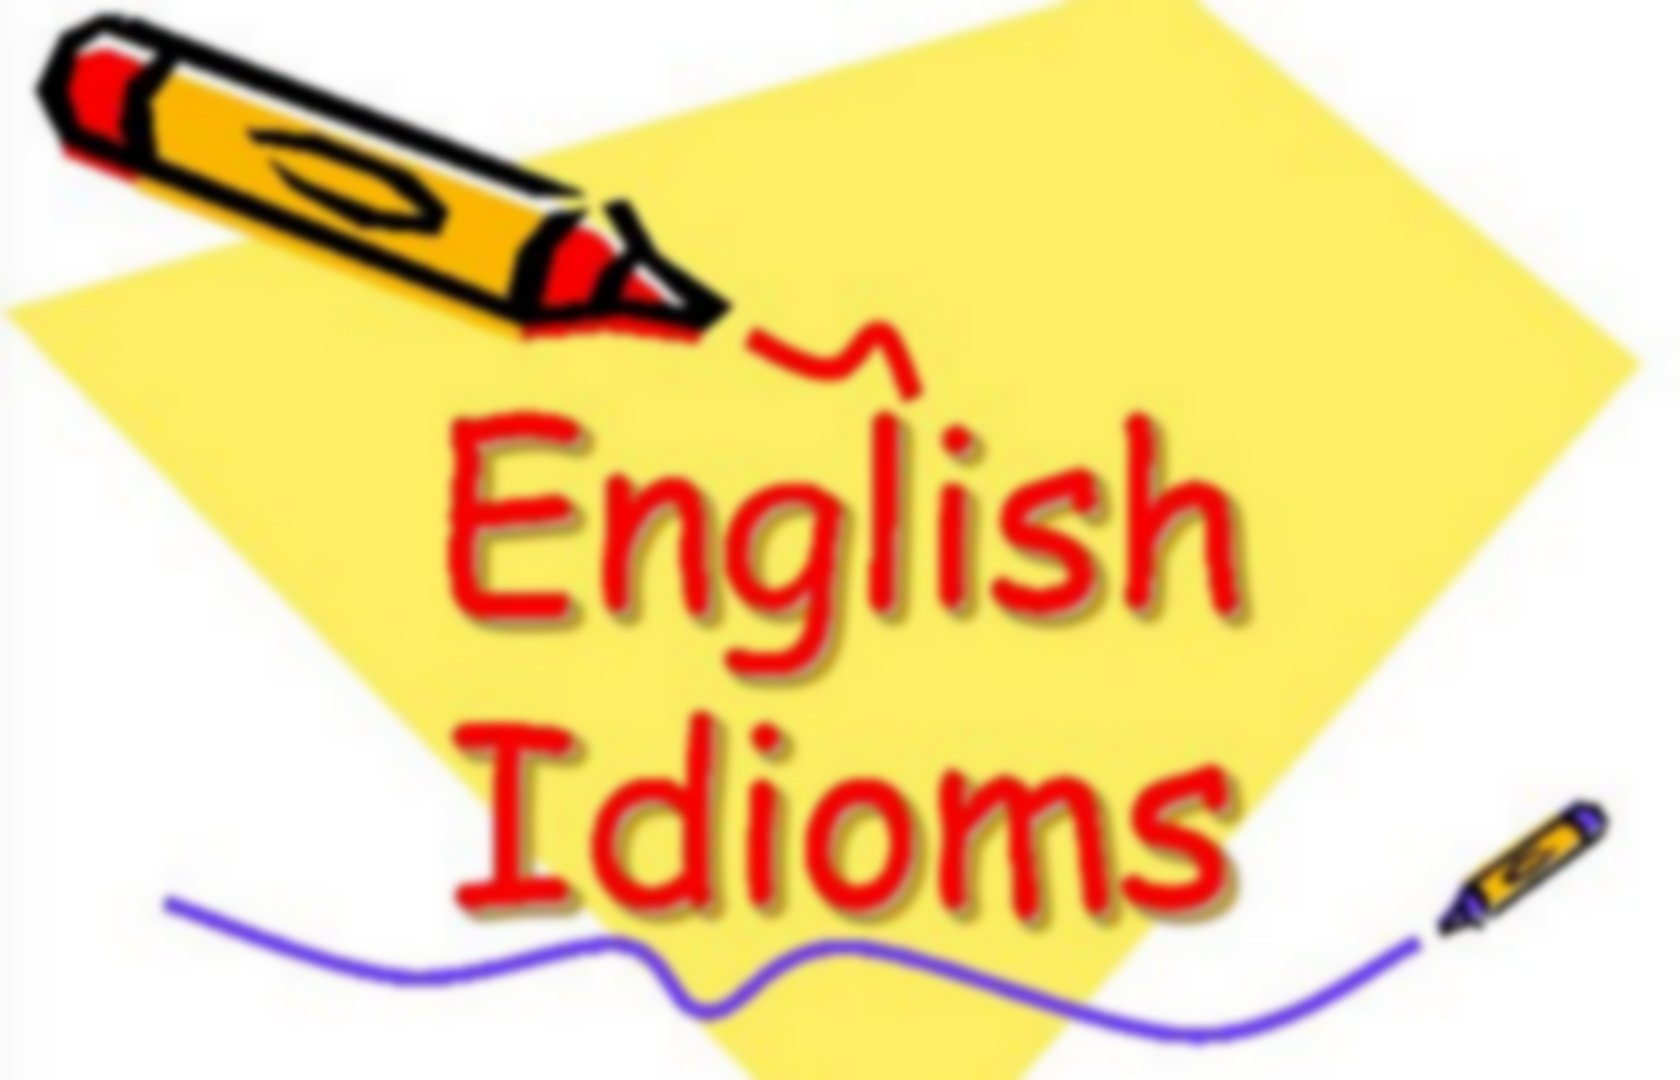 Idioms Quotes Expressionsphrases Sayings Pearltrees